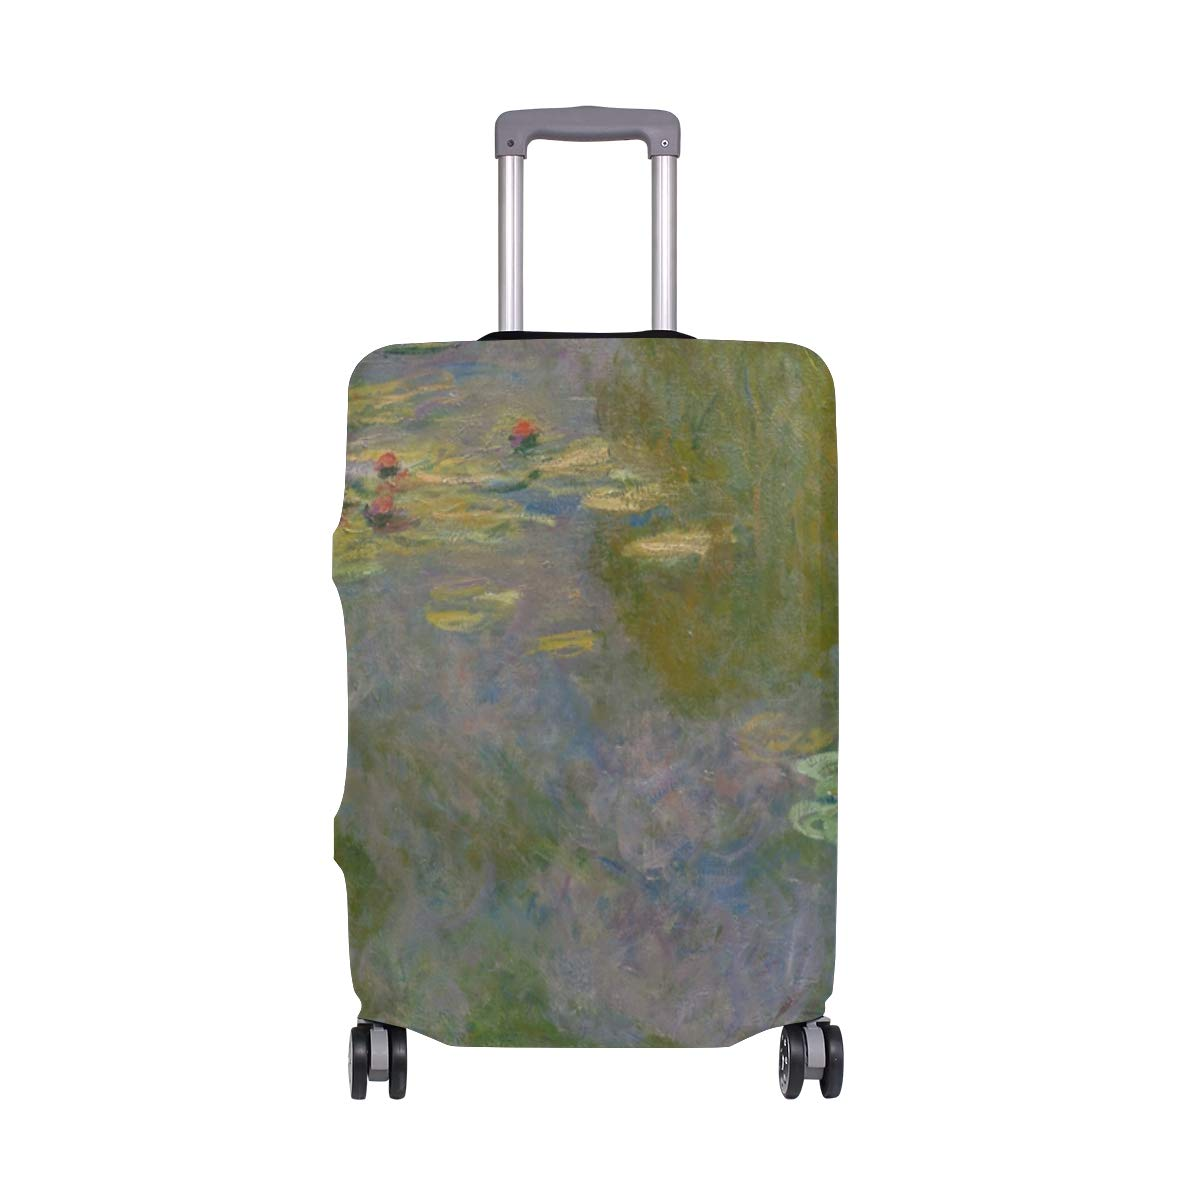 Travel Luggage Cover Spandex Suitcase Protector Washable Baggage Covers Ancient Mexican Girl Portrait